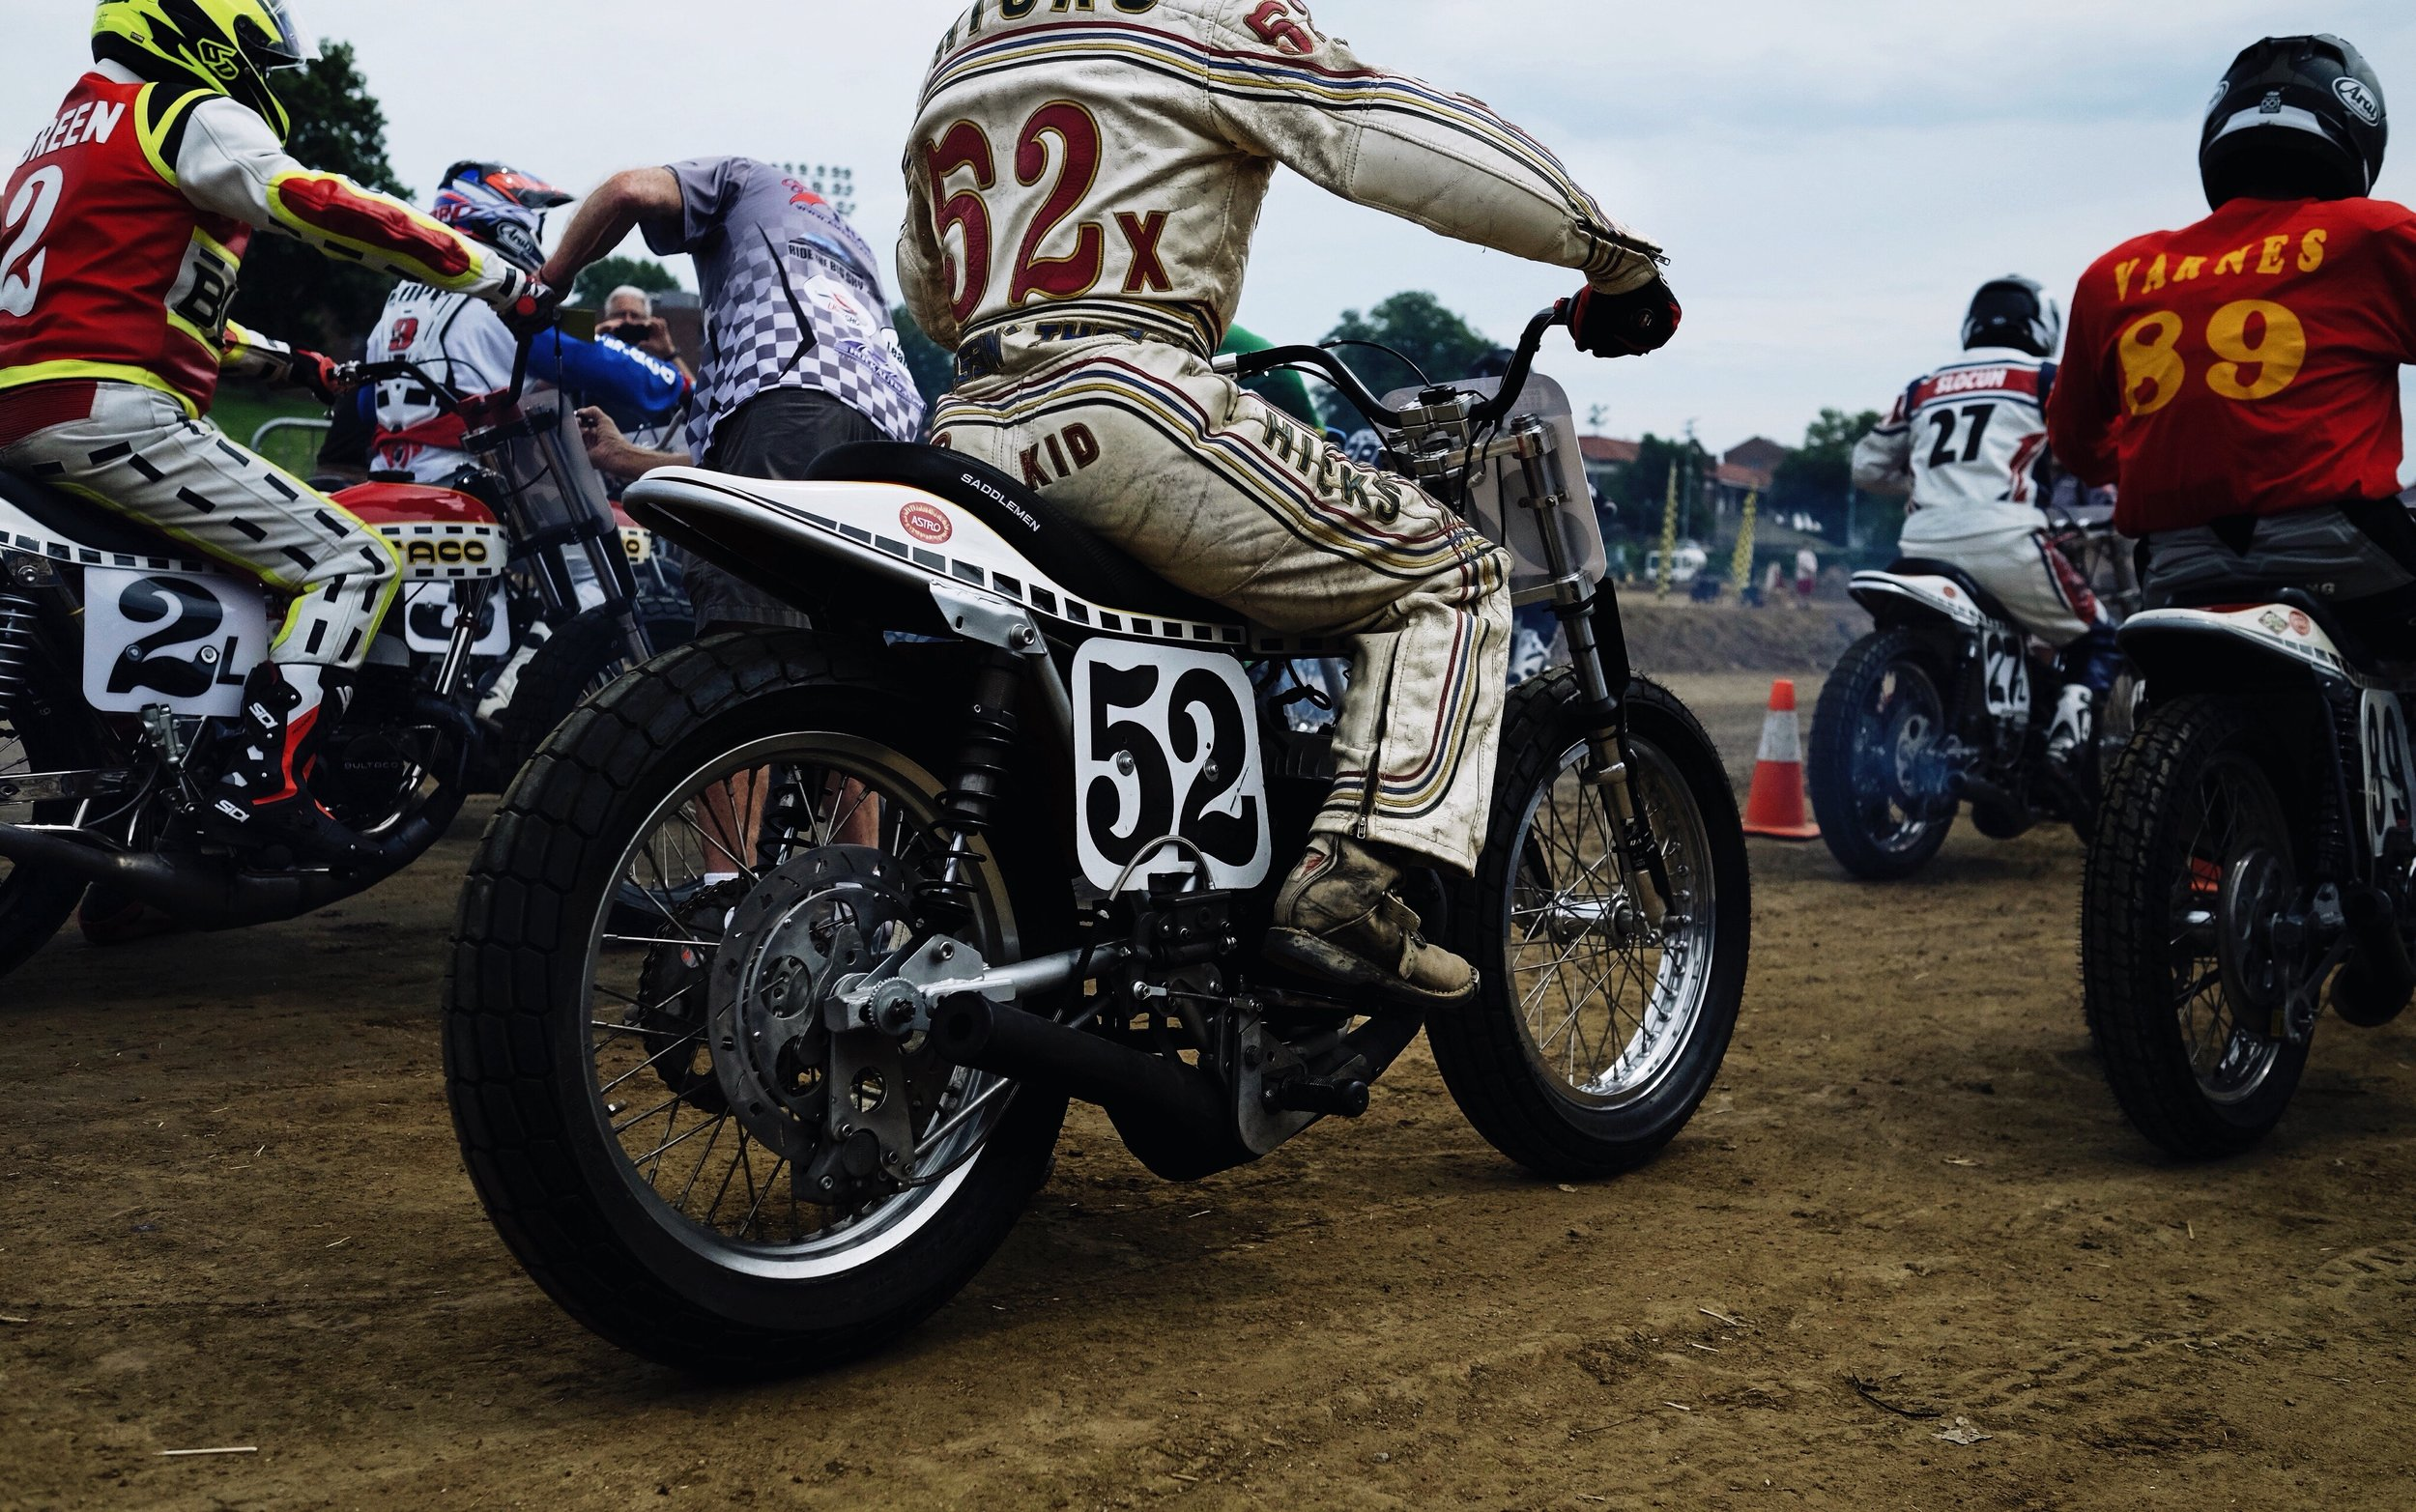 This is at Springfield's short track, two days before the main races. It's rare to see 12 Bultaco bikes at once on the same track. The Bultaco is a Spanish bike from the 60s and 70s.